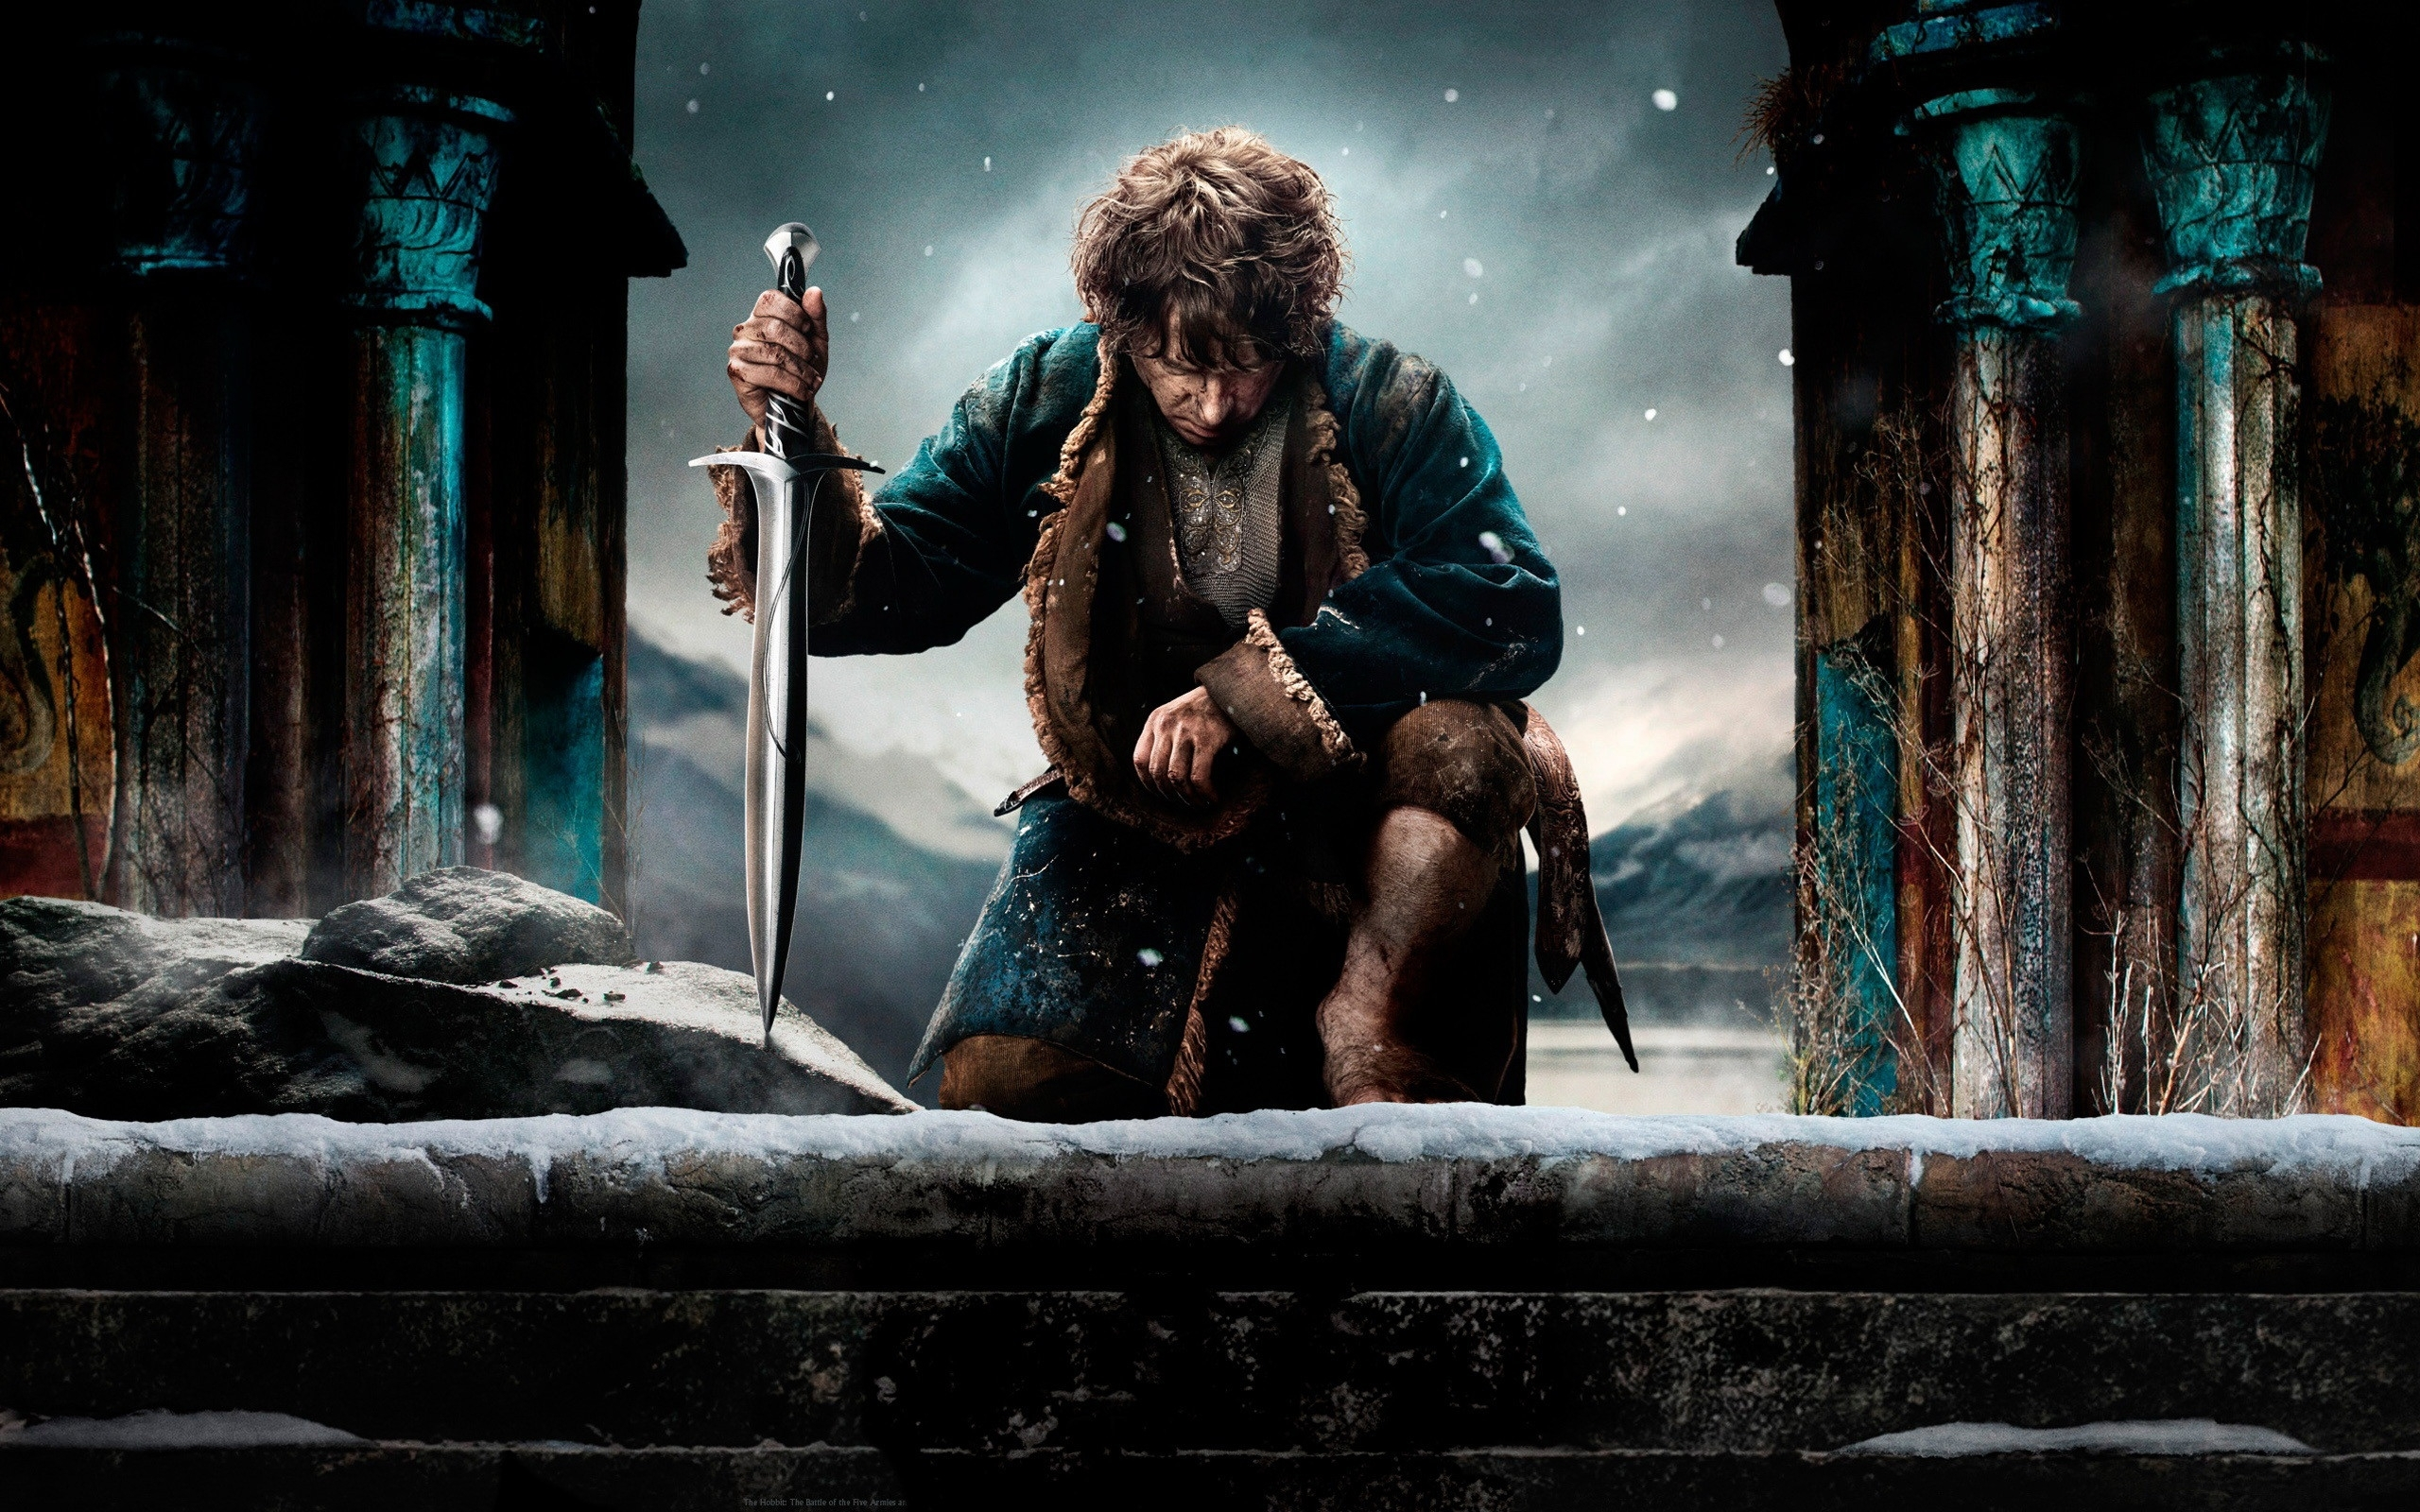 the hobbit wallpaper 1920x1080 (84+ images)